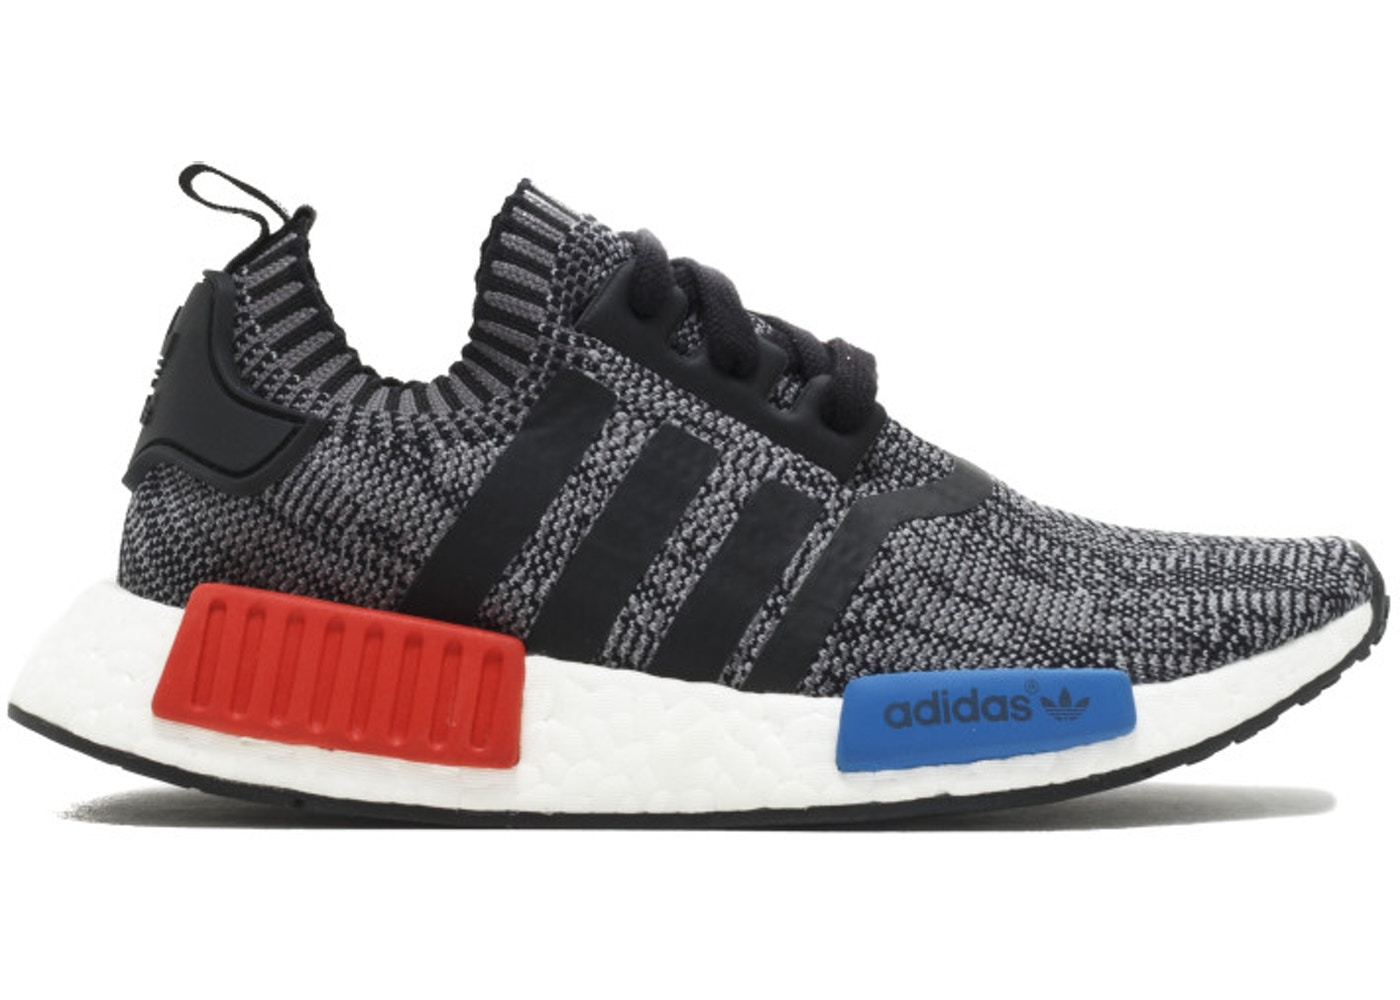 64735b55e4820 adidas NMD R1 Primeknit Friends and Family - N00001